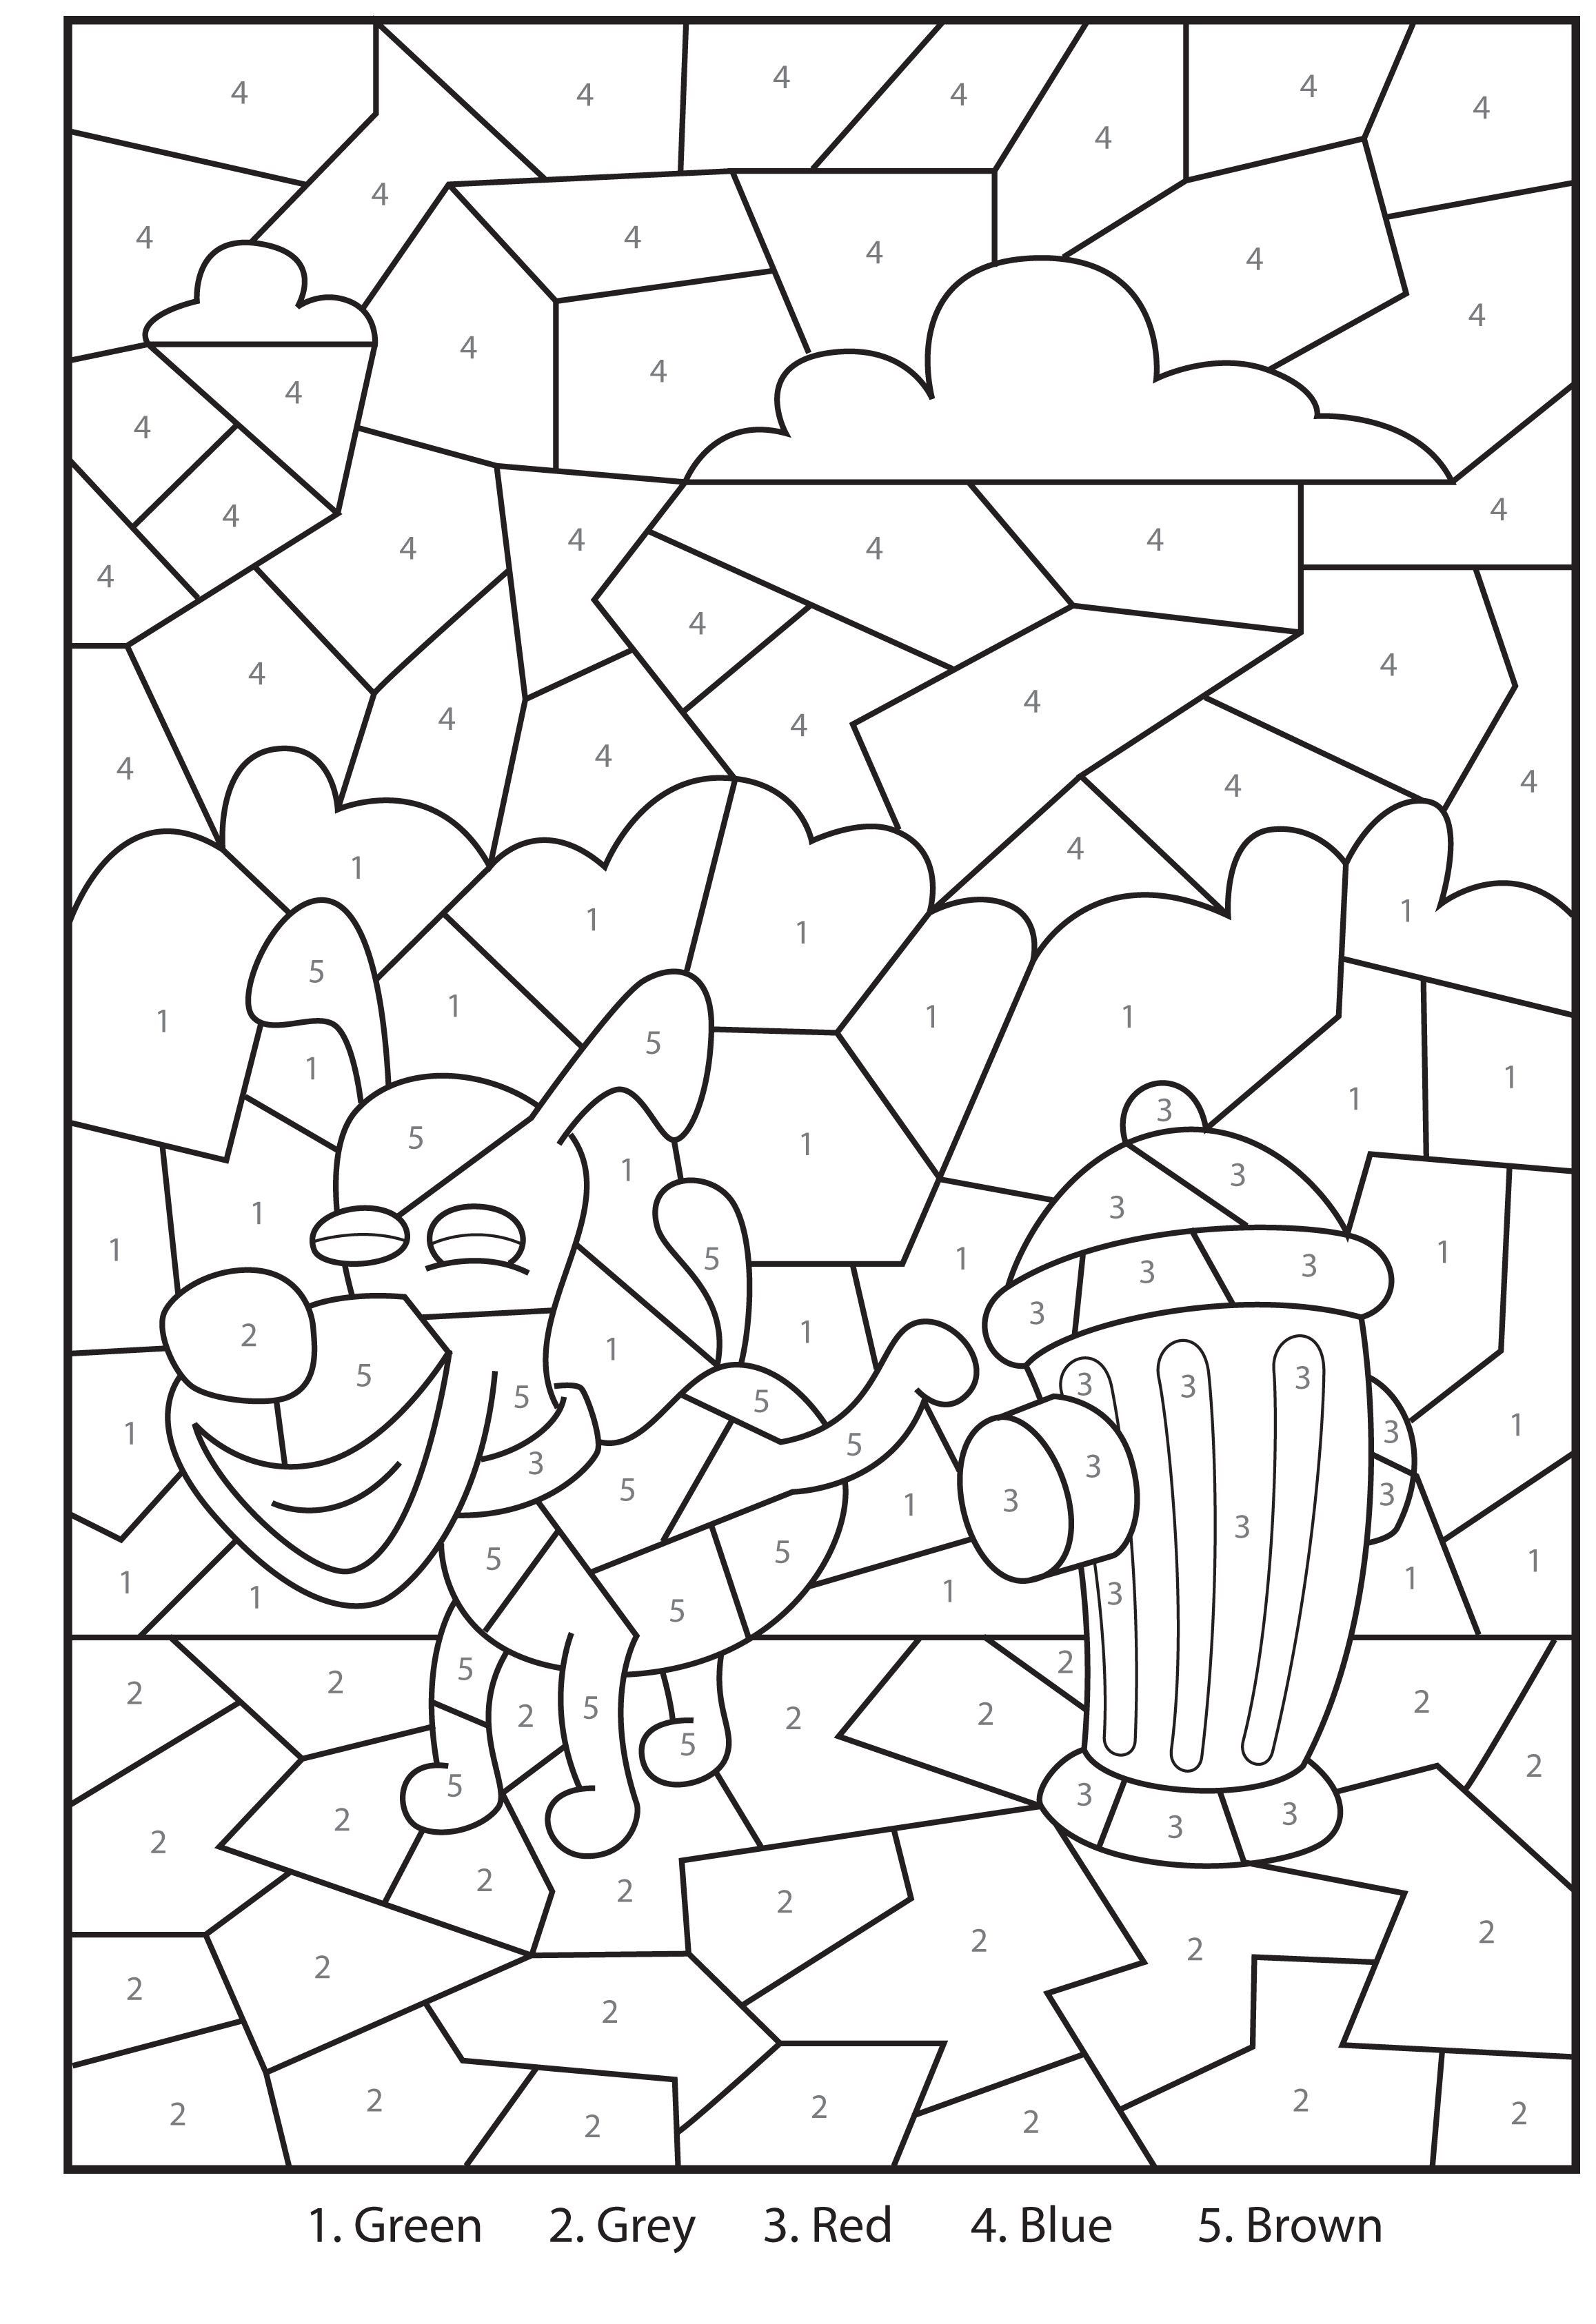 Unique Colour By Numbers Printable Coloring Coloringpages Coloringpagesforkids Coloringpagesforadult Coloring Pages Color By Numbers Coloring Sheets